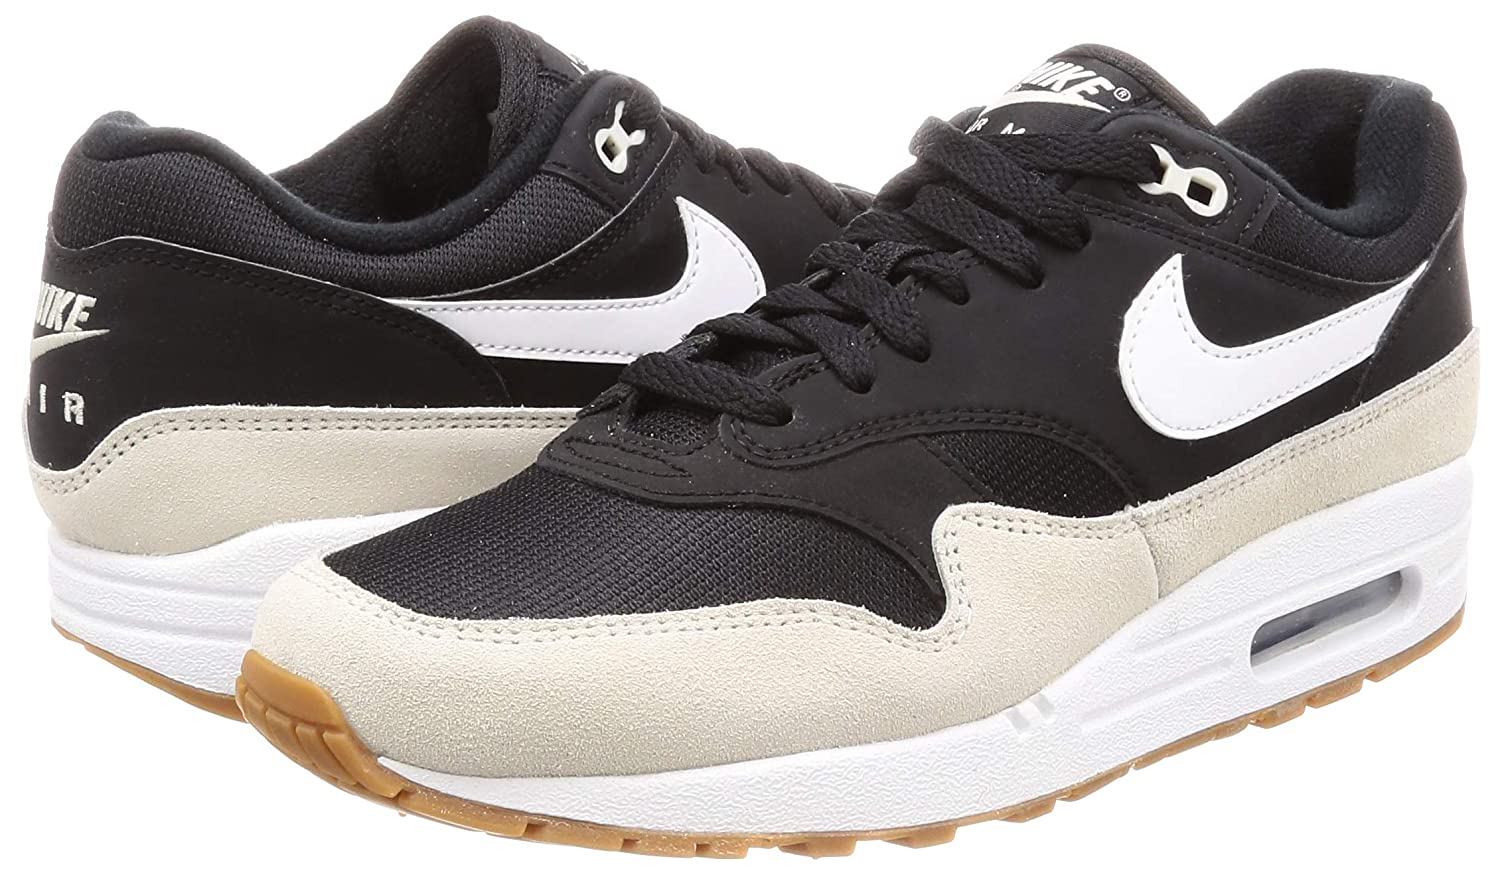 reputable site 62178 df0f8 Amazon.com   NIKE Air Max 1 Mens Ah8145-009   Shoes